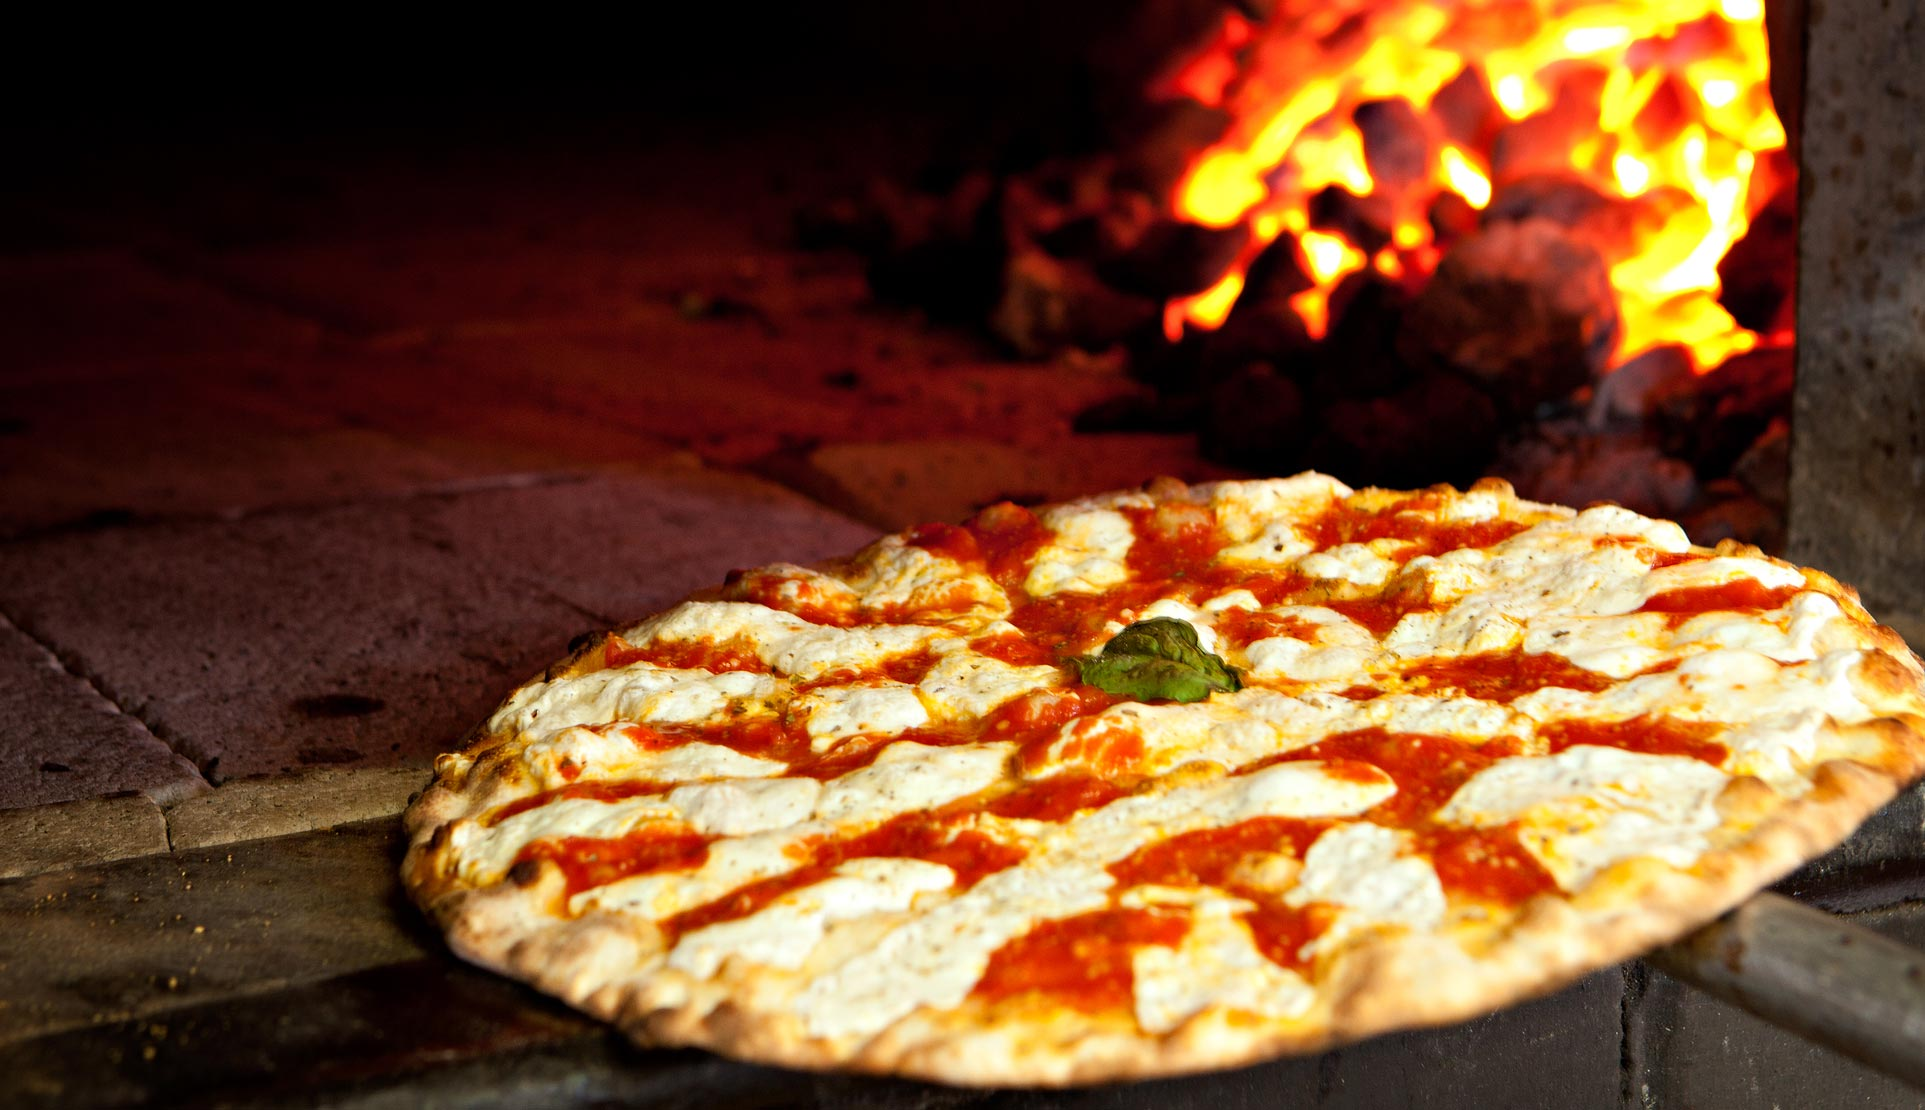 Grimaldi's coal brick-oven pizza, photo courtesy of Grimaldi's.